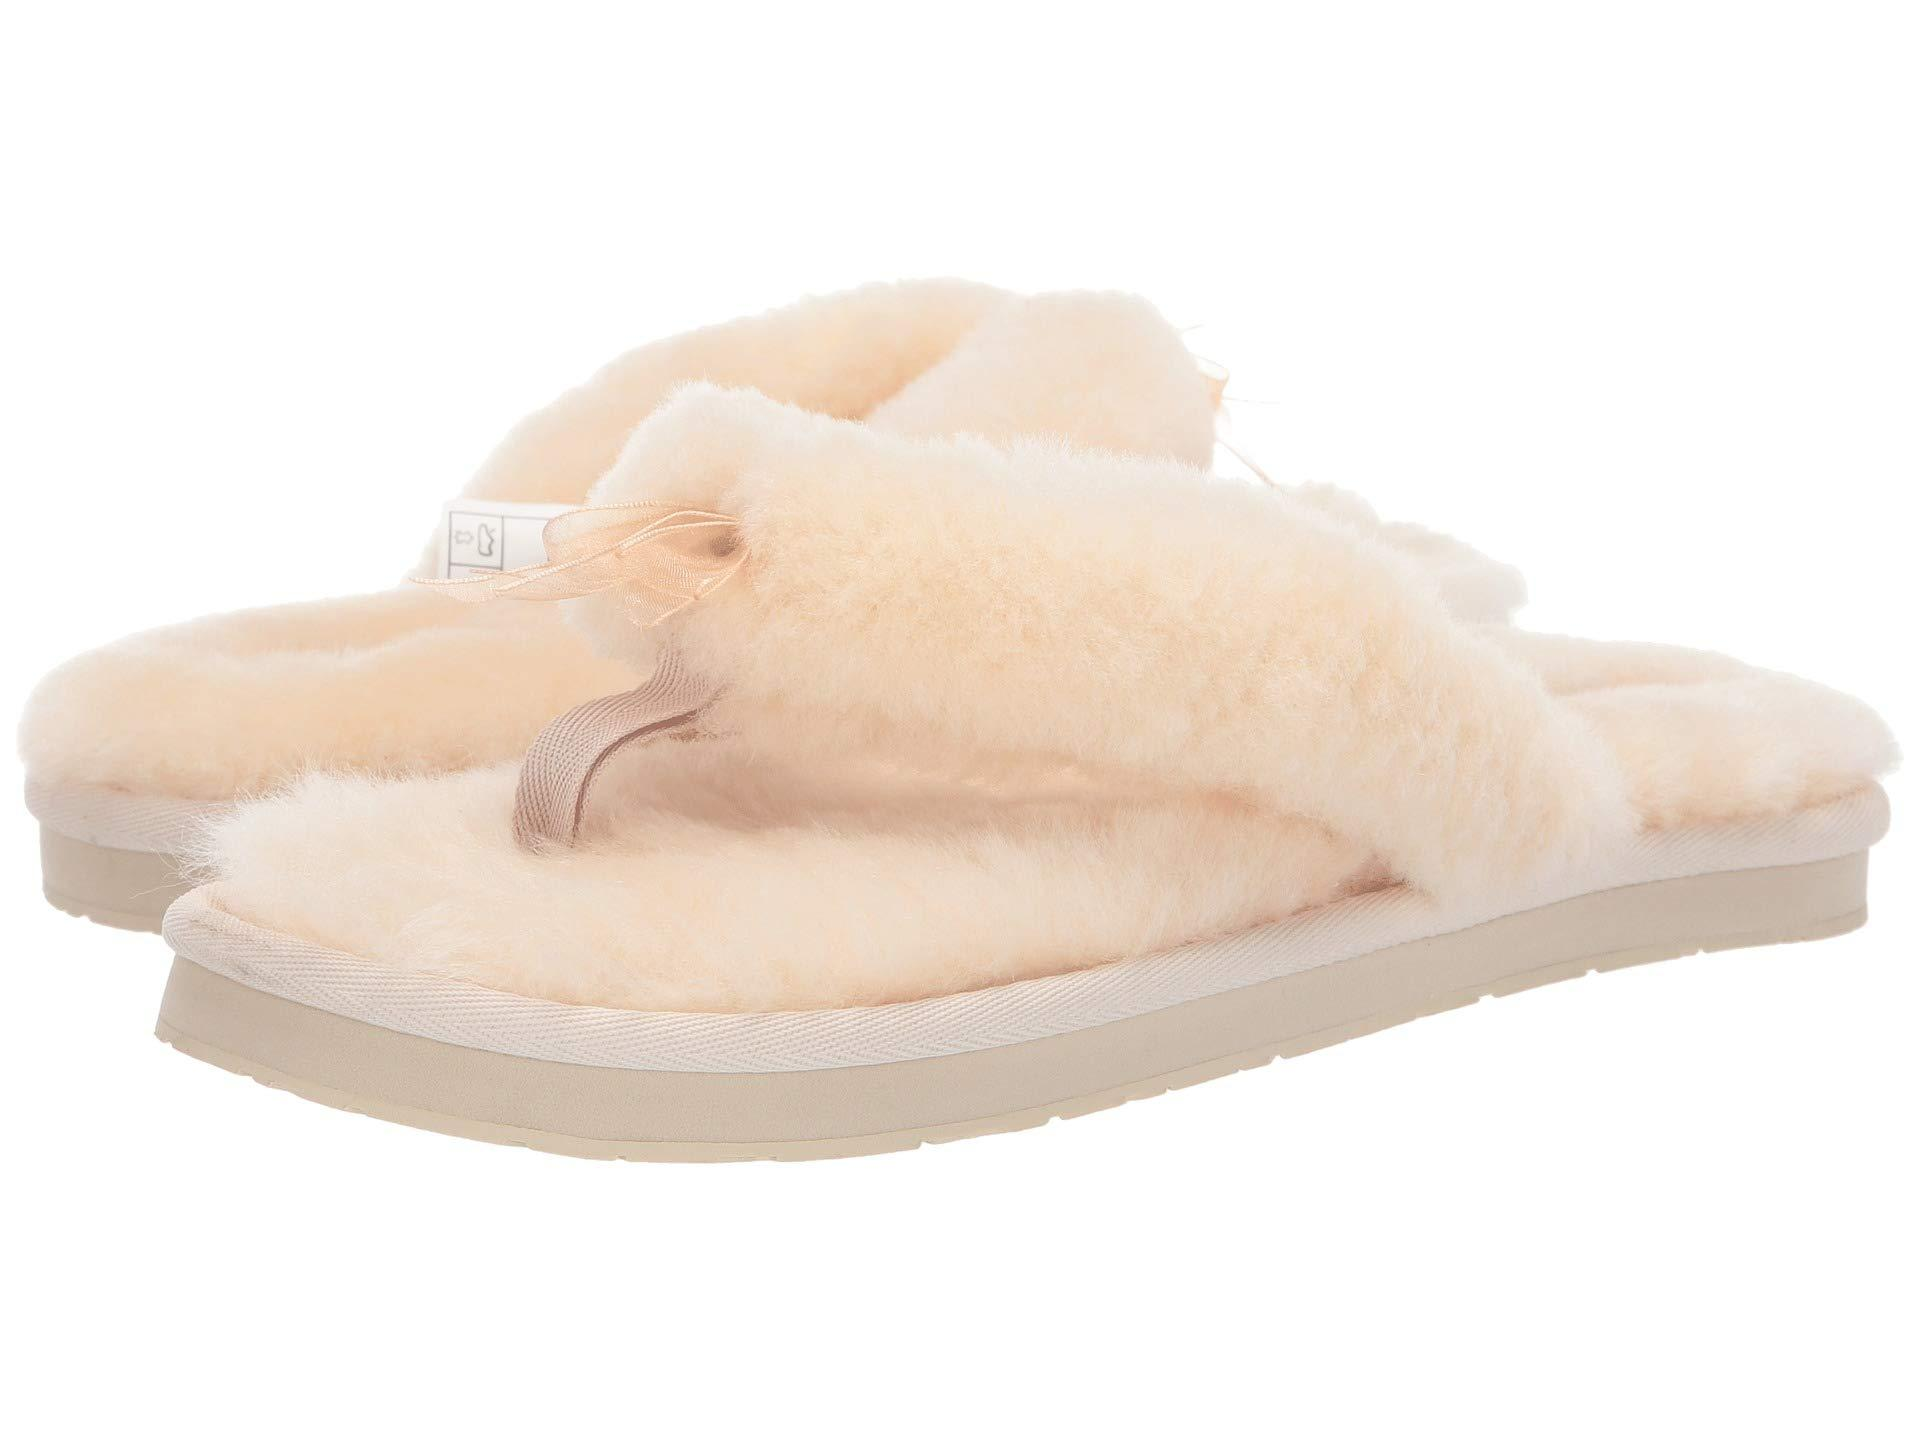 6a031fc5d10c Lyst - UGG Fluff Flip Flop Iii (agave Glow) Women s Slippers in Natural